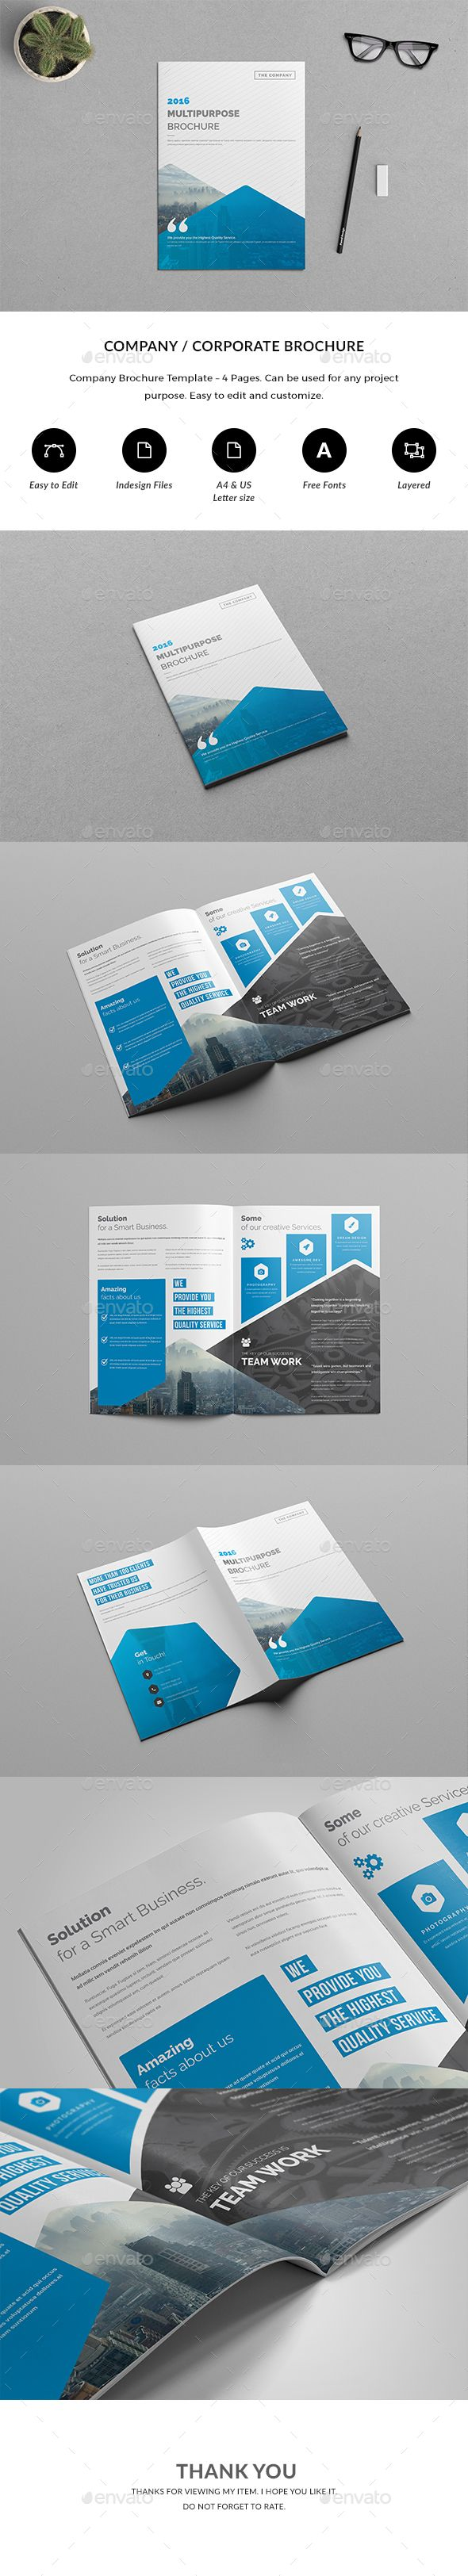 brochure 4 pages template indesign indd brochure templates